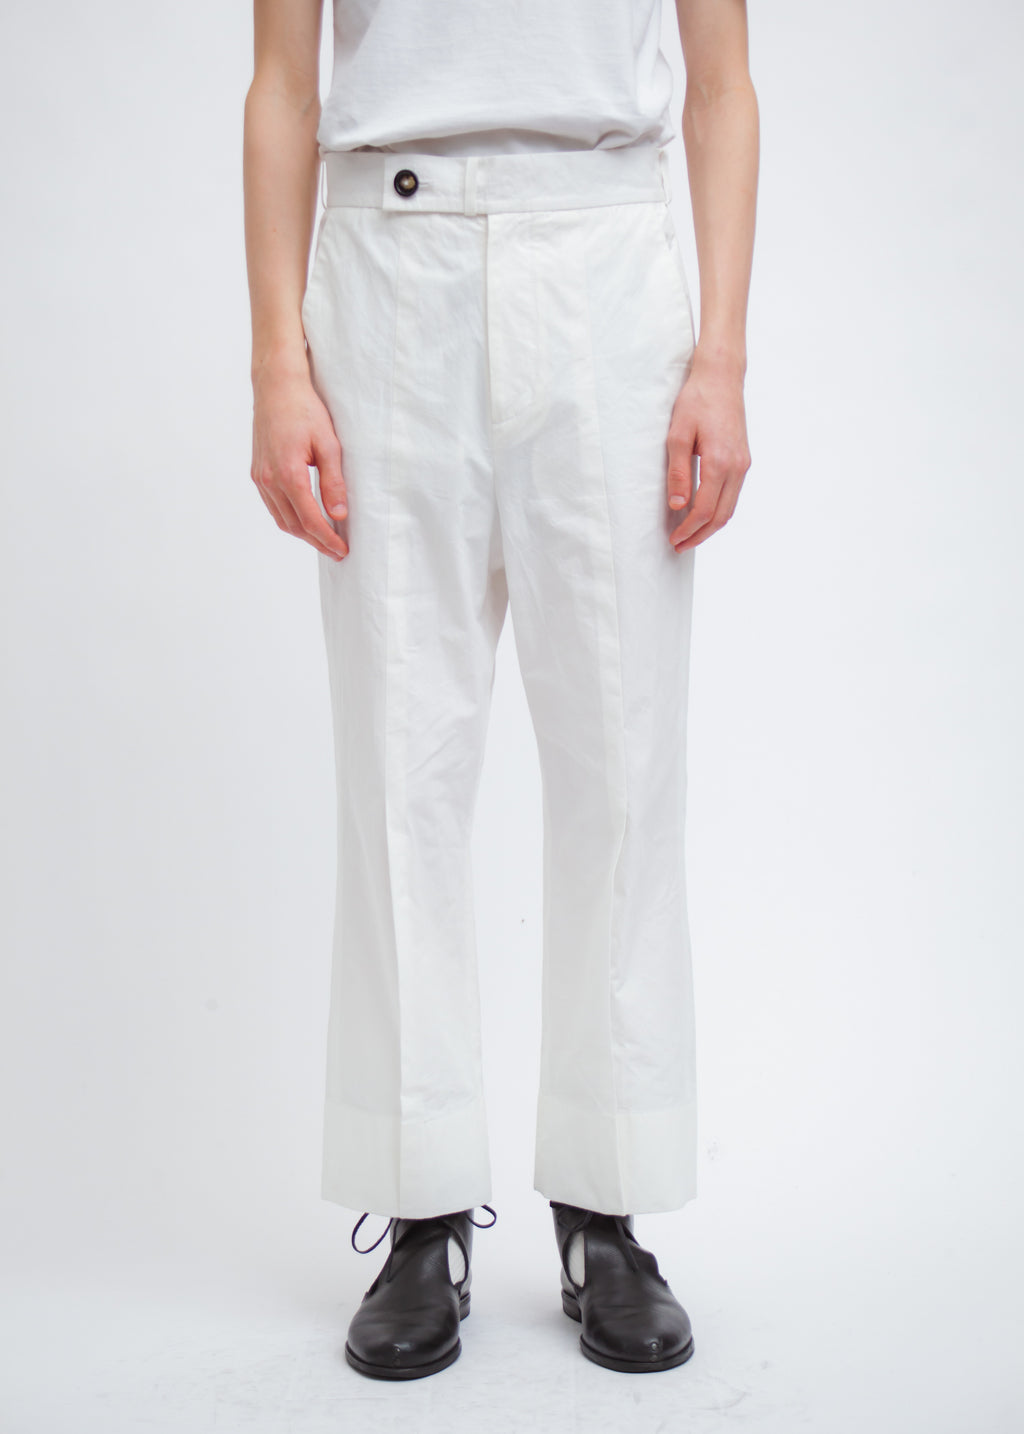 Omar Afridi Rover Trousers (White Cotton)